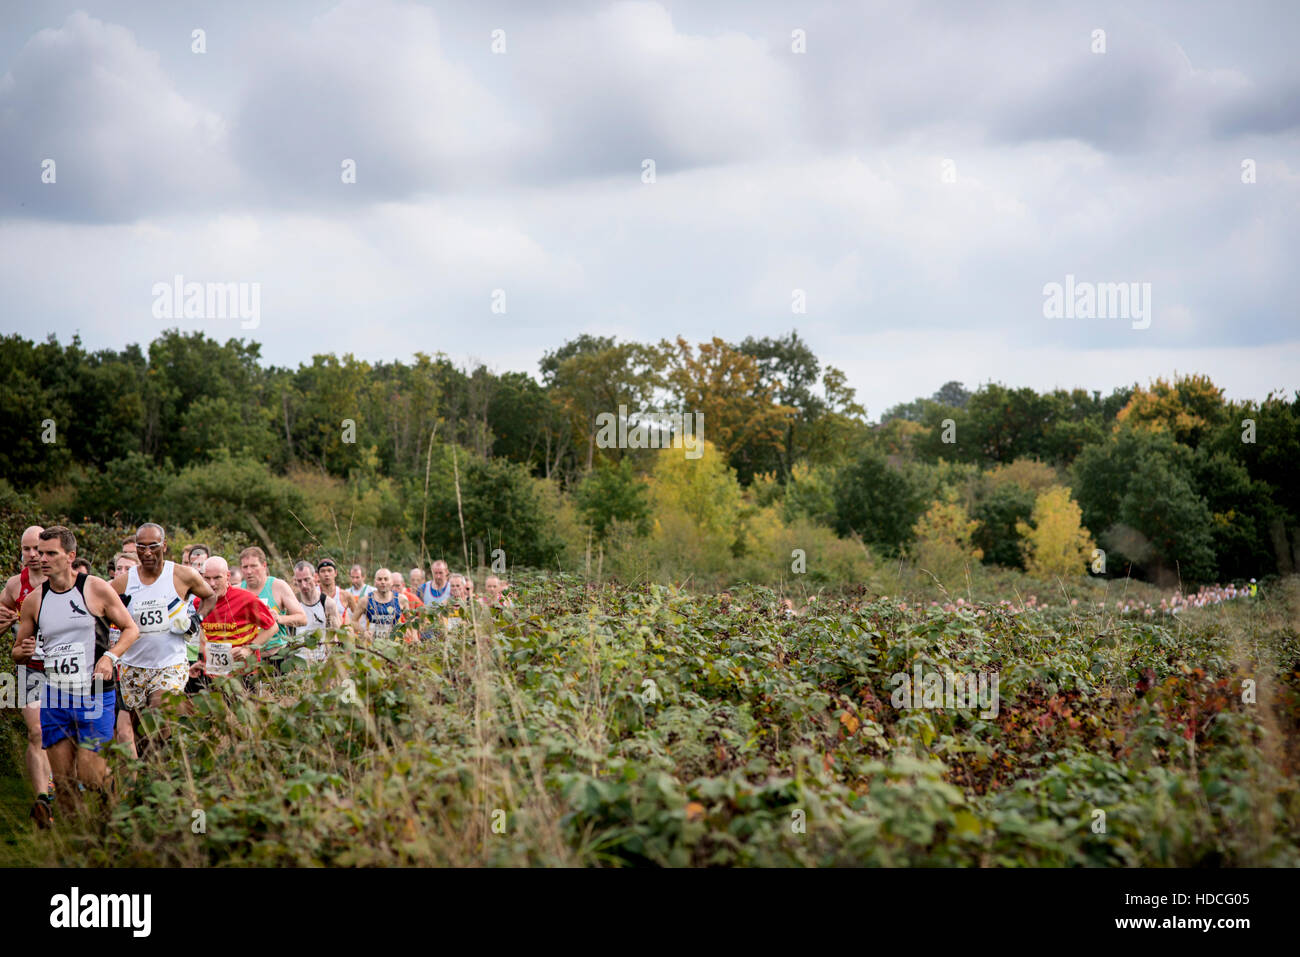 Runners compete in the Metropolitan Cross Country League at Claybury Park, Woodford Green, London on 10 October - Stock Image